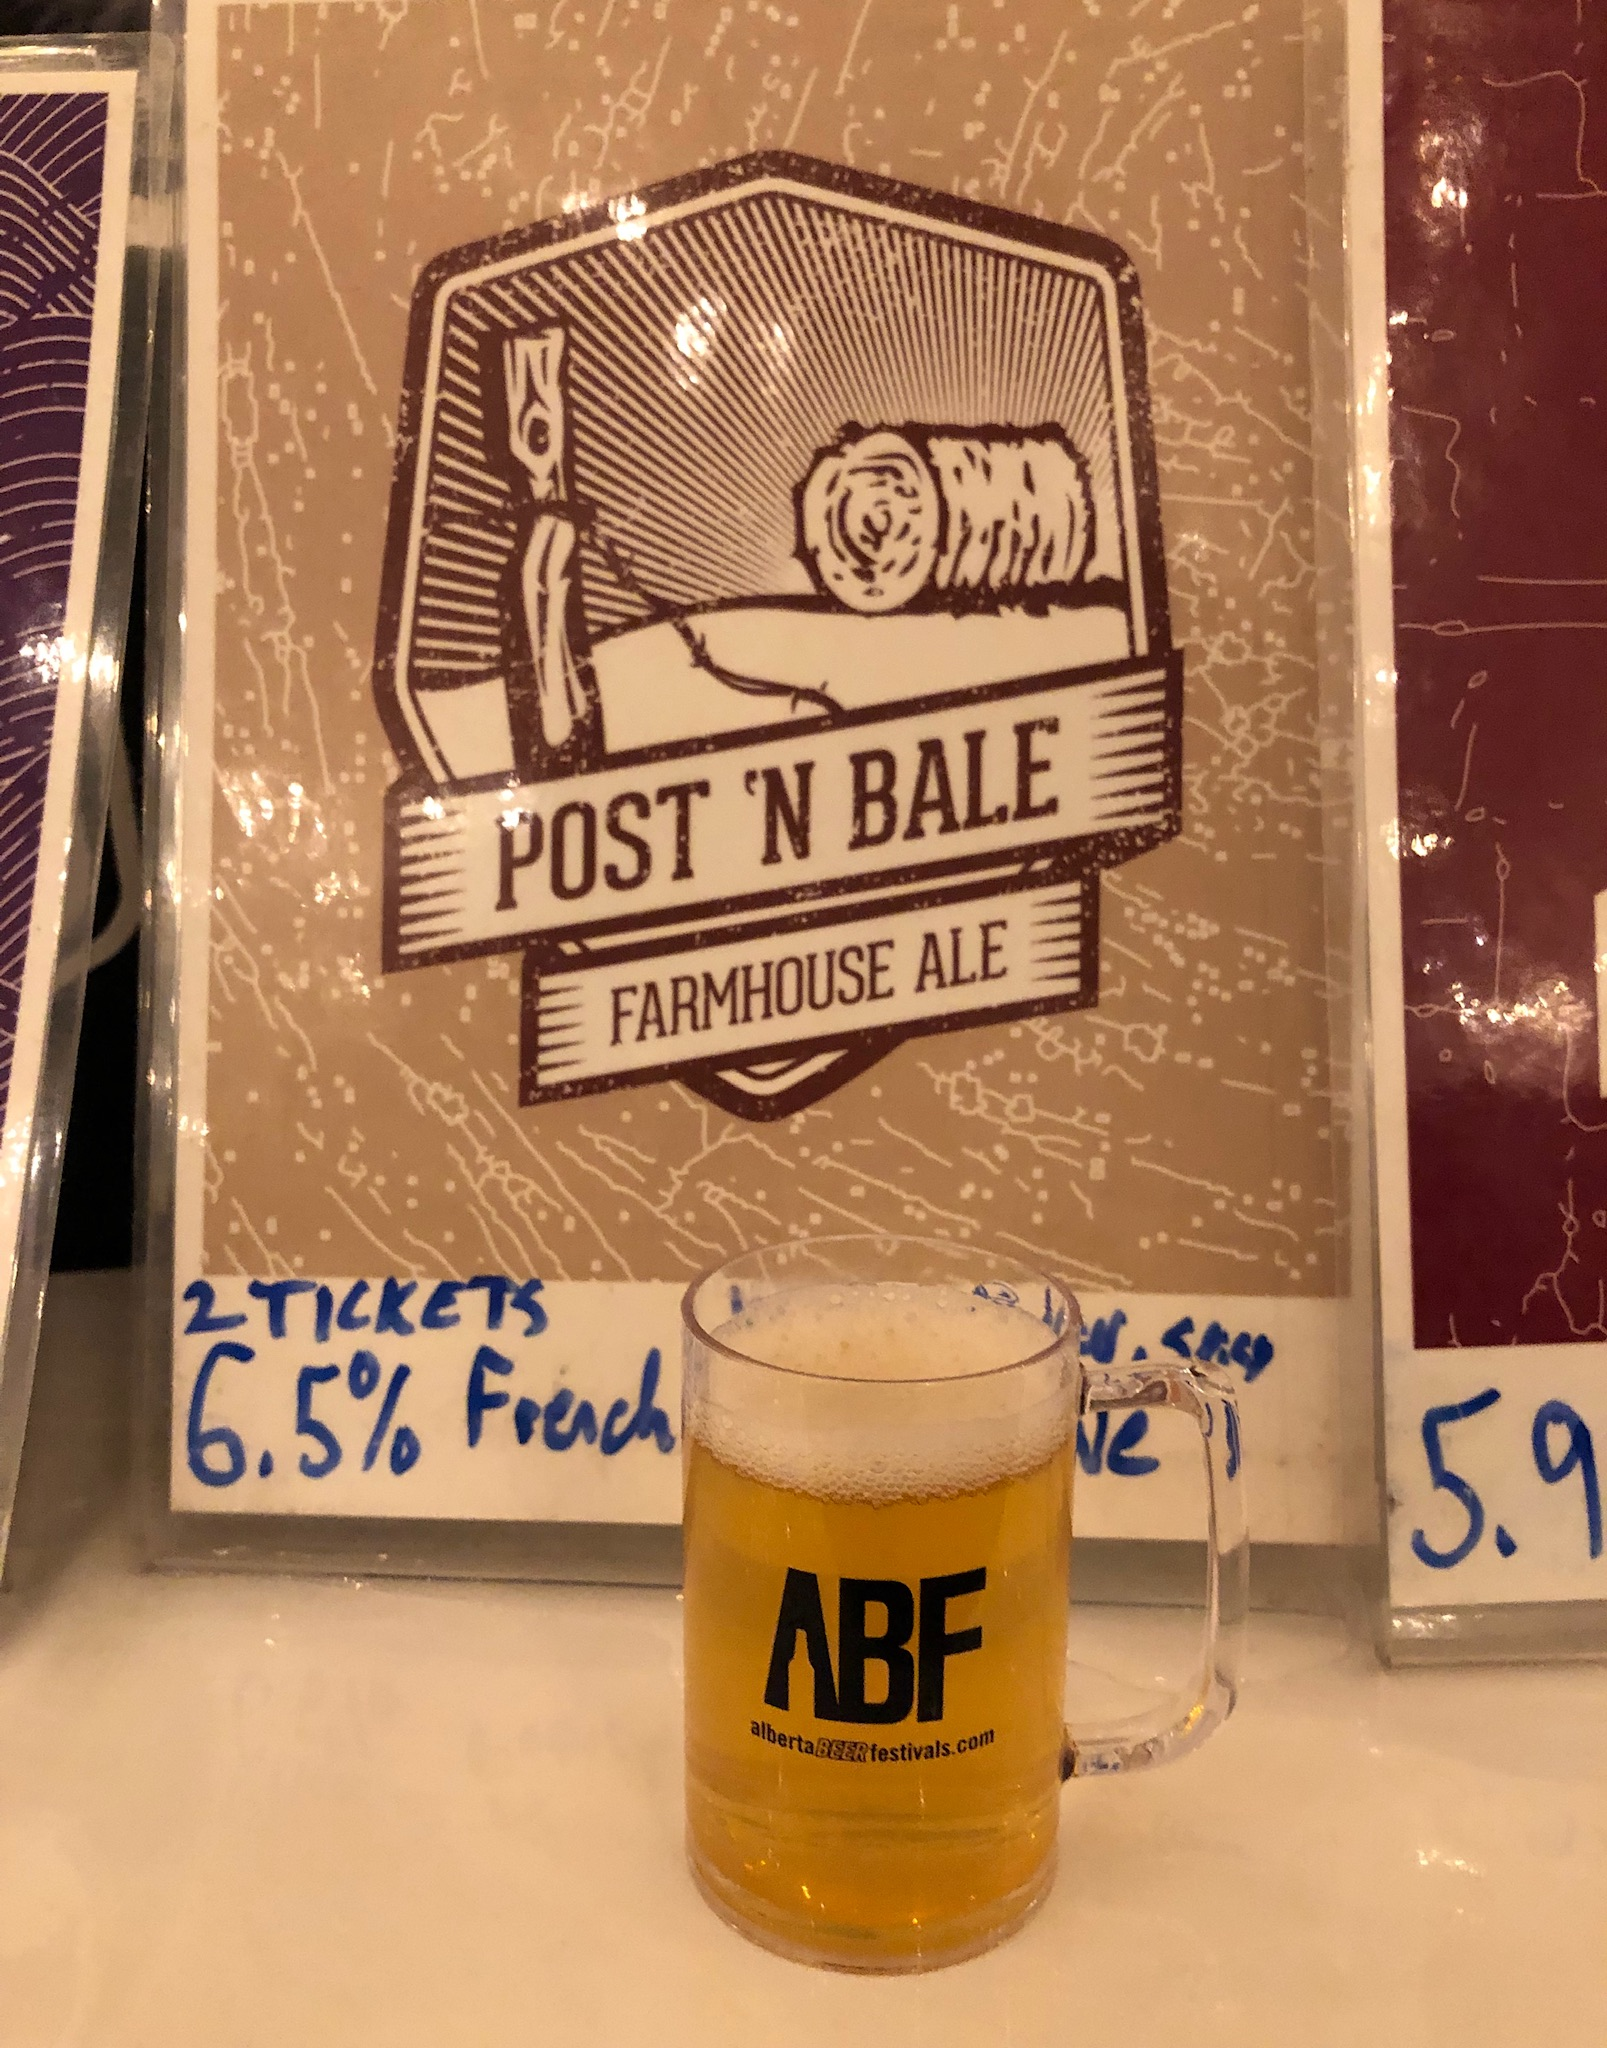 Post 'N' Bale Farmhouse Ale at the Banff Craft Beer Festival.